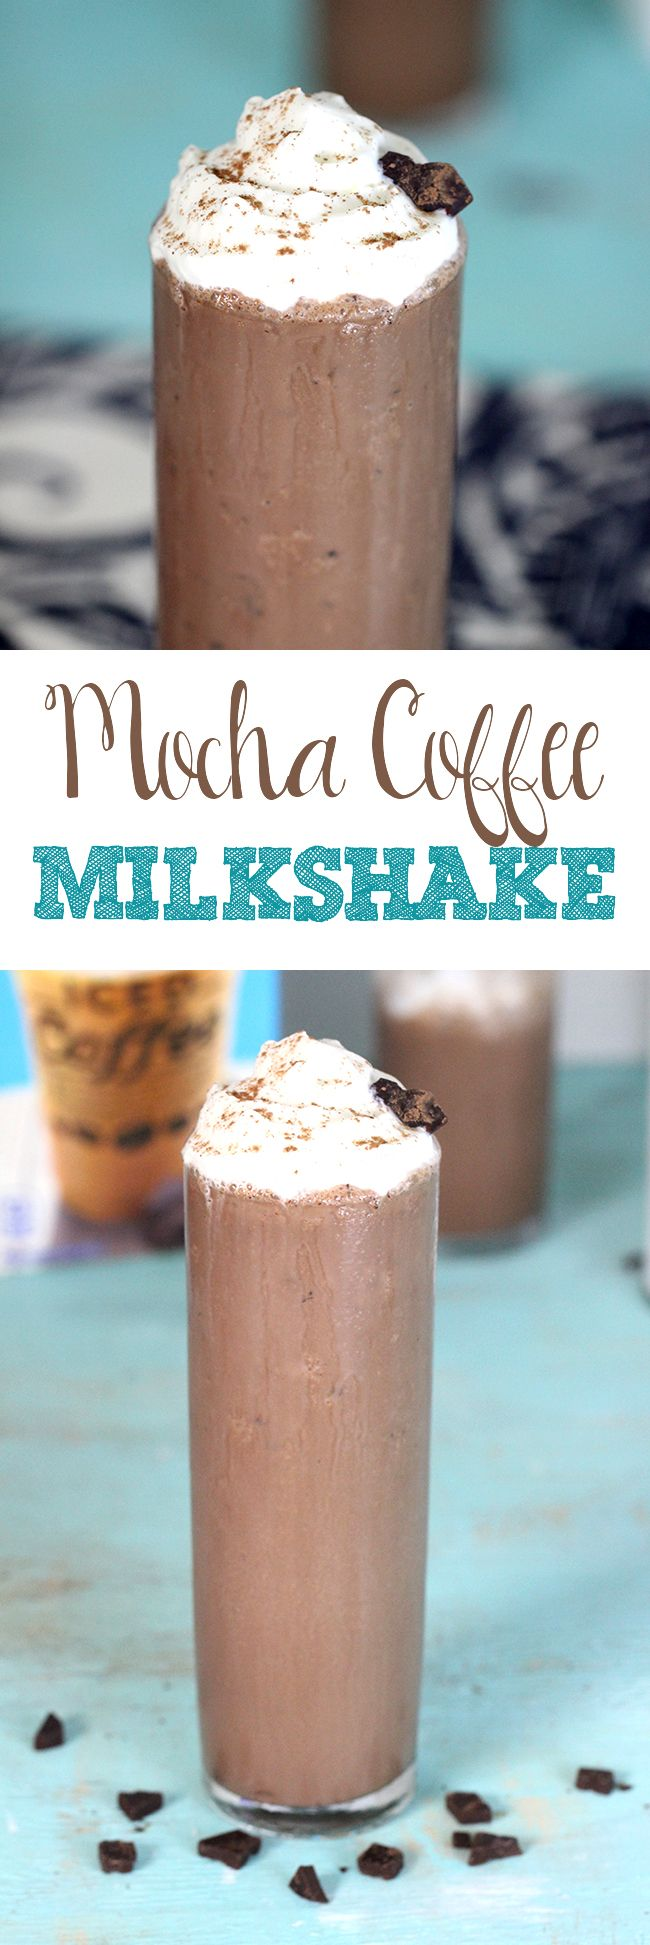 """Drool Time! Can't remember the last time I made a milkshake just for me!! """"Me Time"""" Mocha Coffee Milkshake #IDelightin10 #ad"""